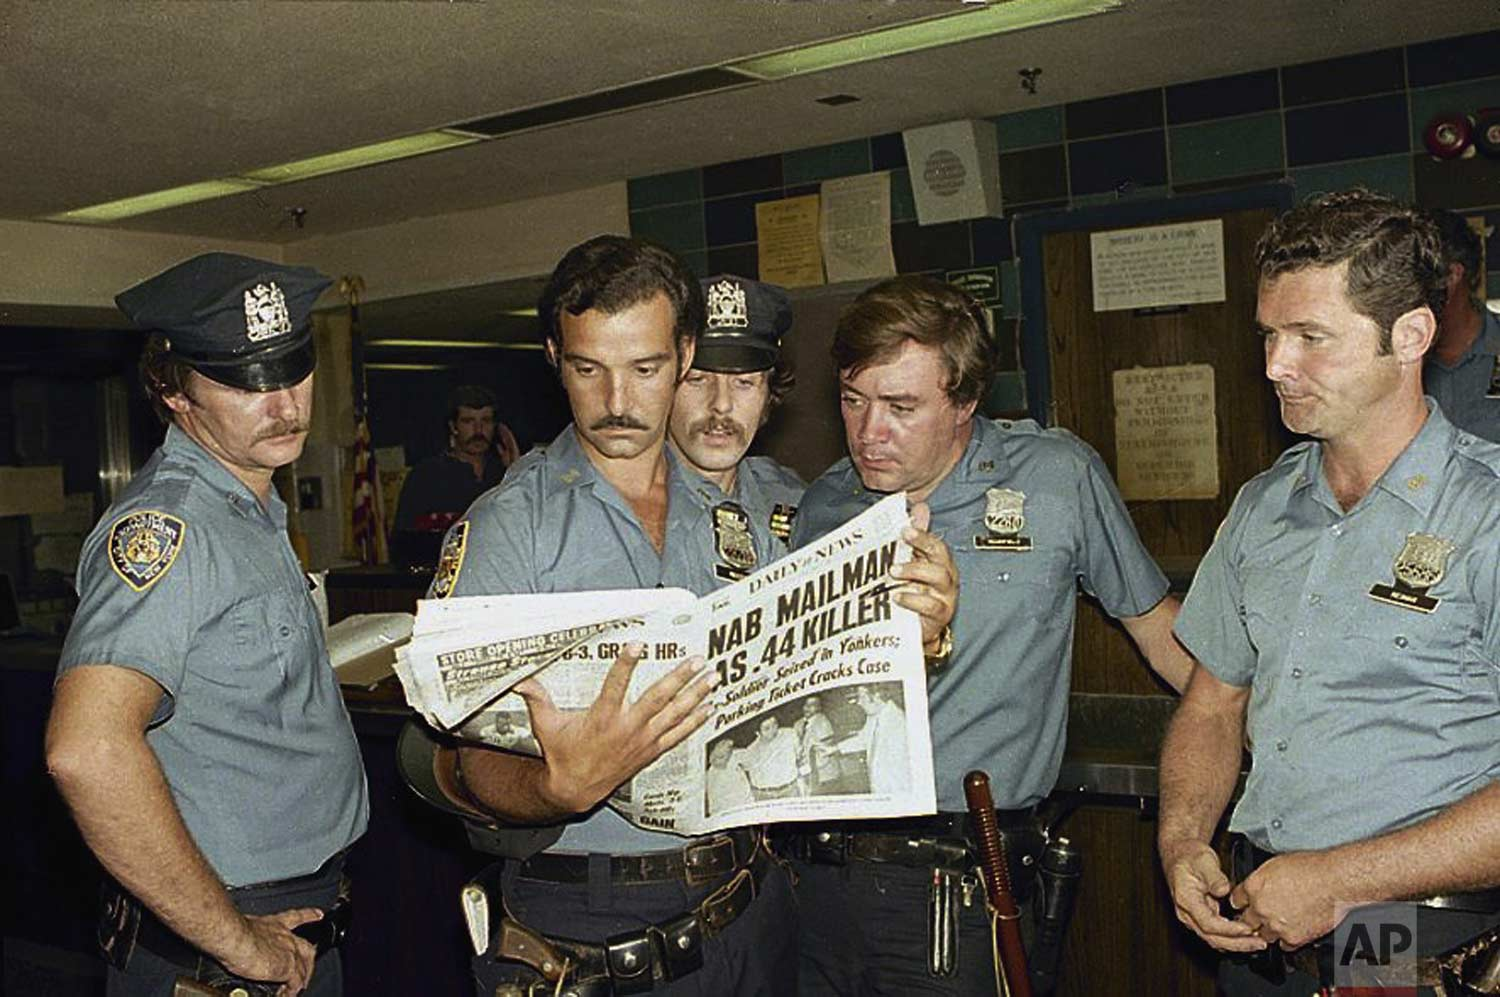 "Unidentified officers of the 84th Precinct in Brooklyn read news of the capture of the "".44 Caliber Killer"", David Berkowitz, Aug. 11, 1977. (AP Photo/Dan Goodrich)"